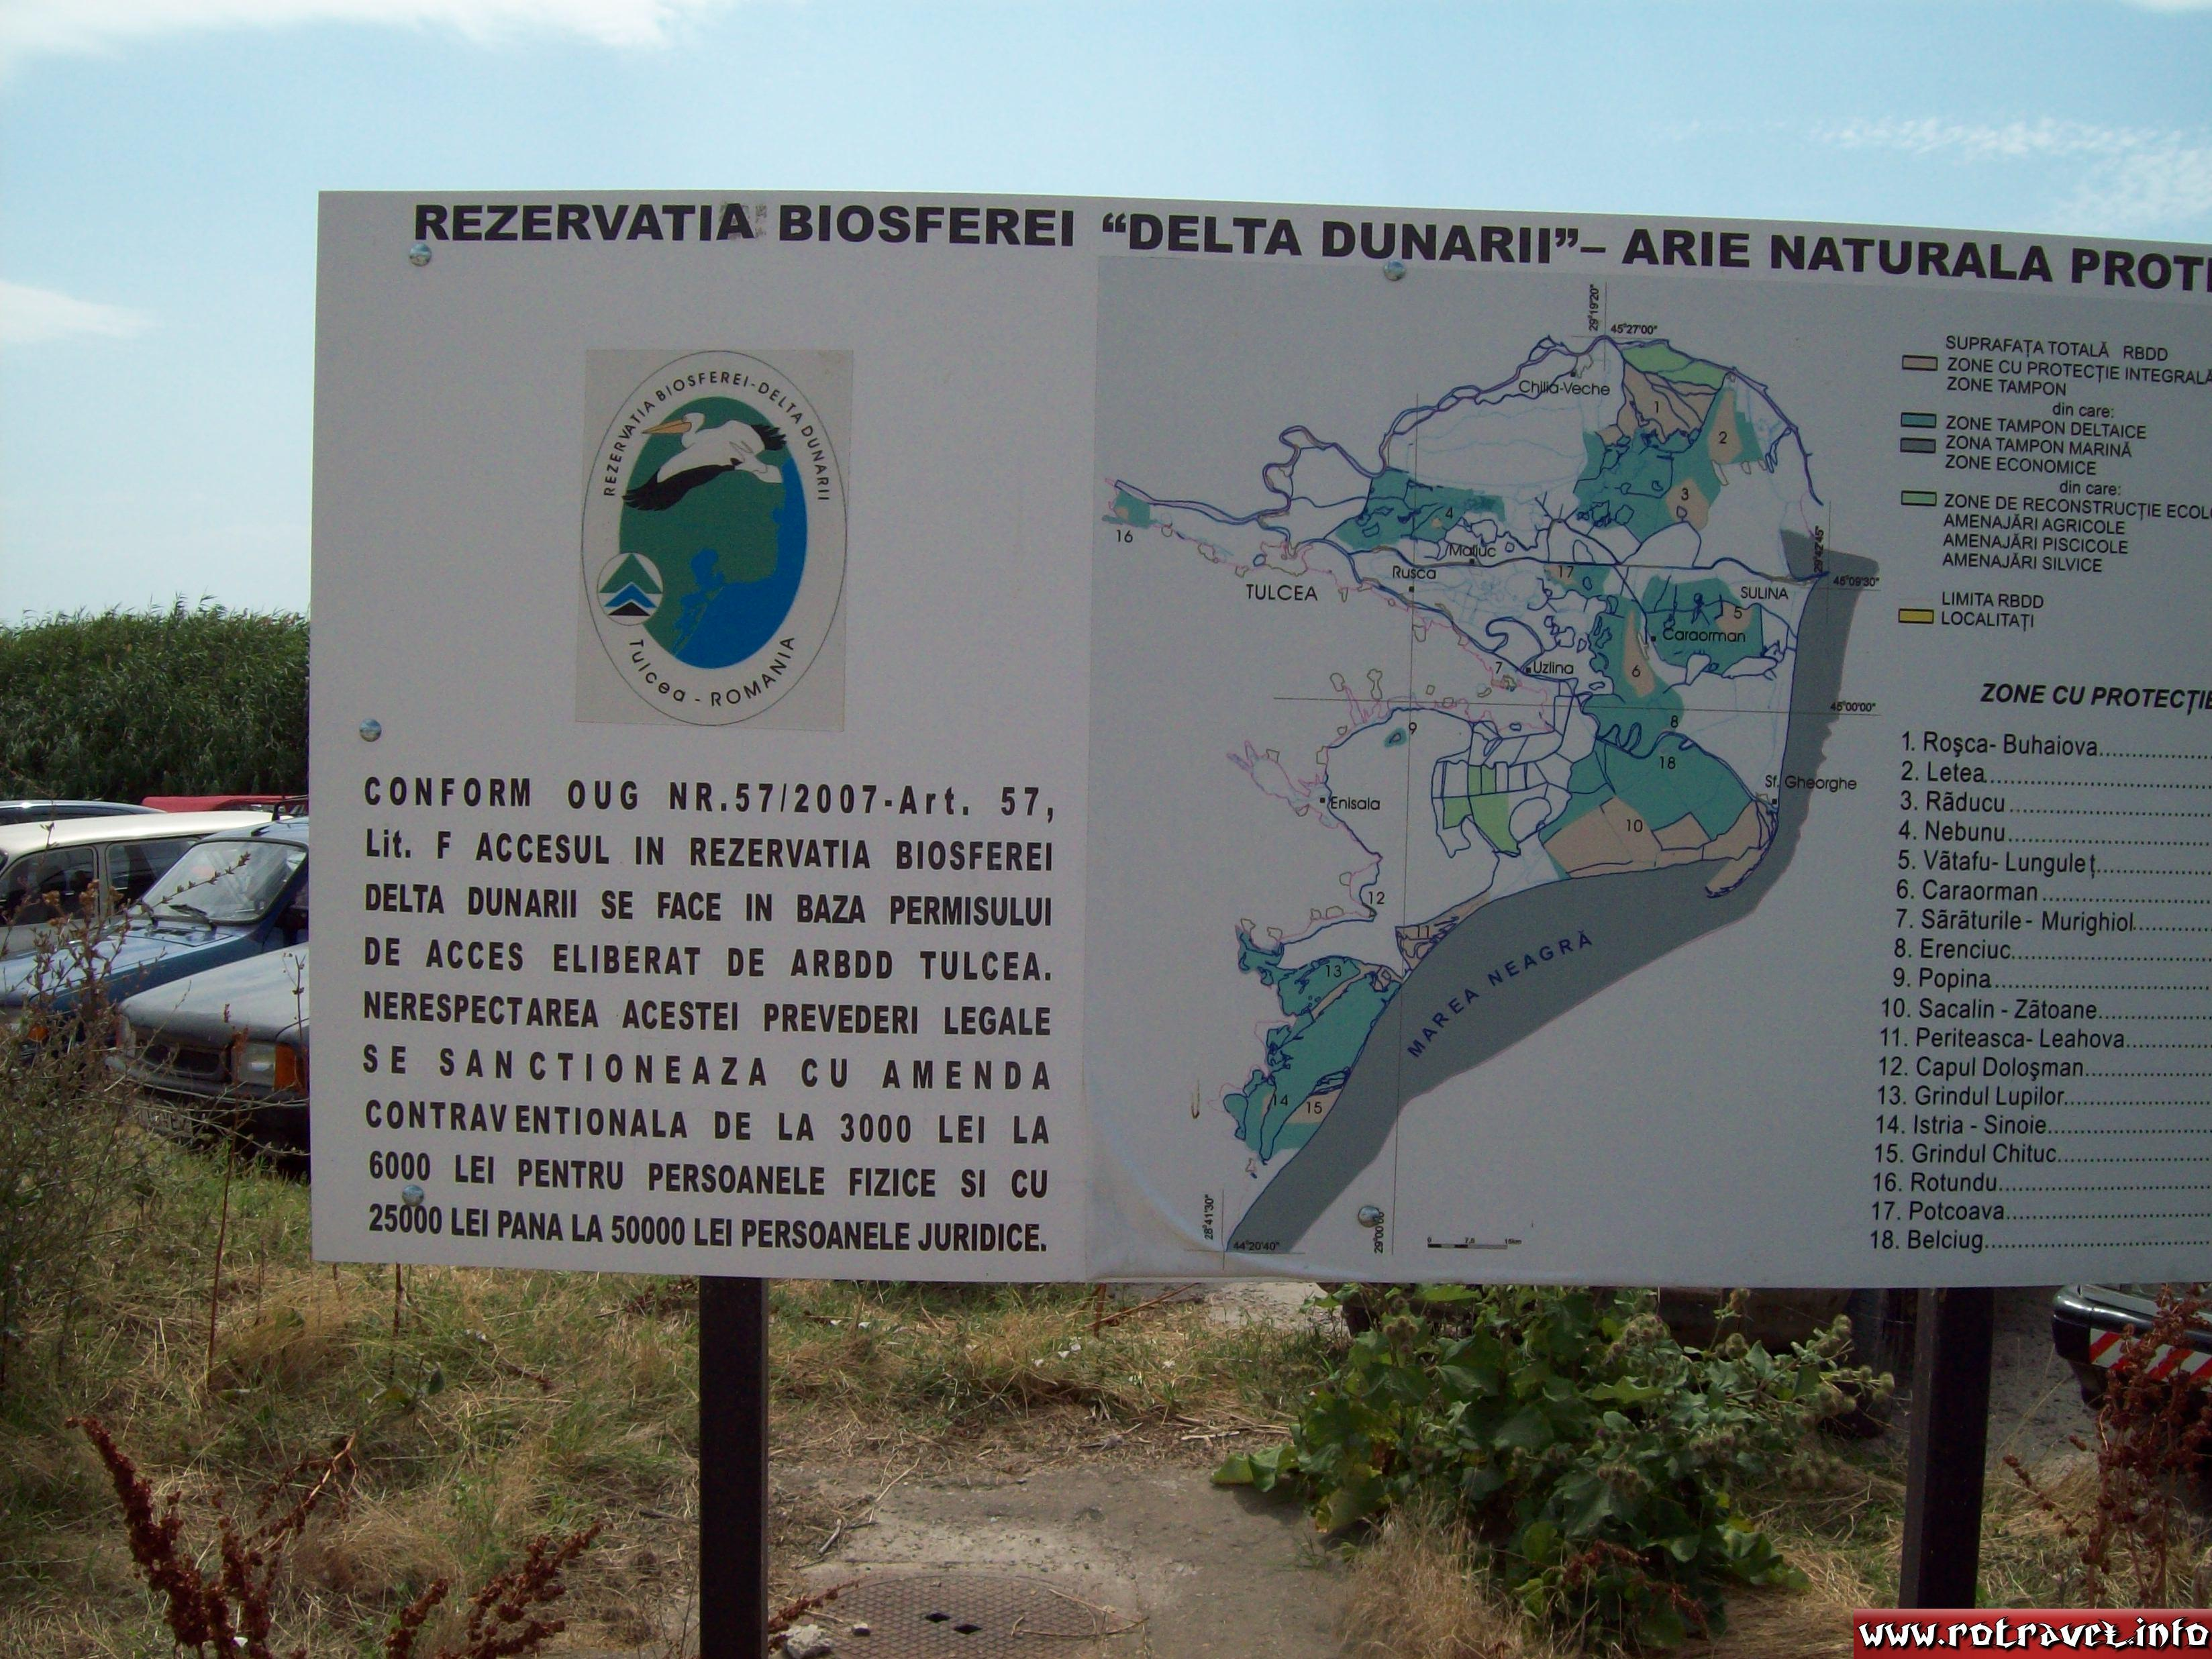 A panel with the map of the Danube Delta Biosphere Reservation